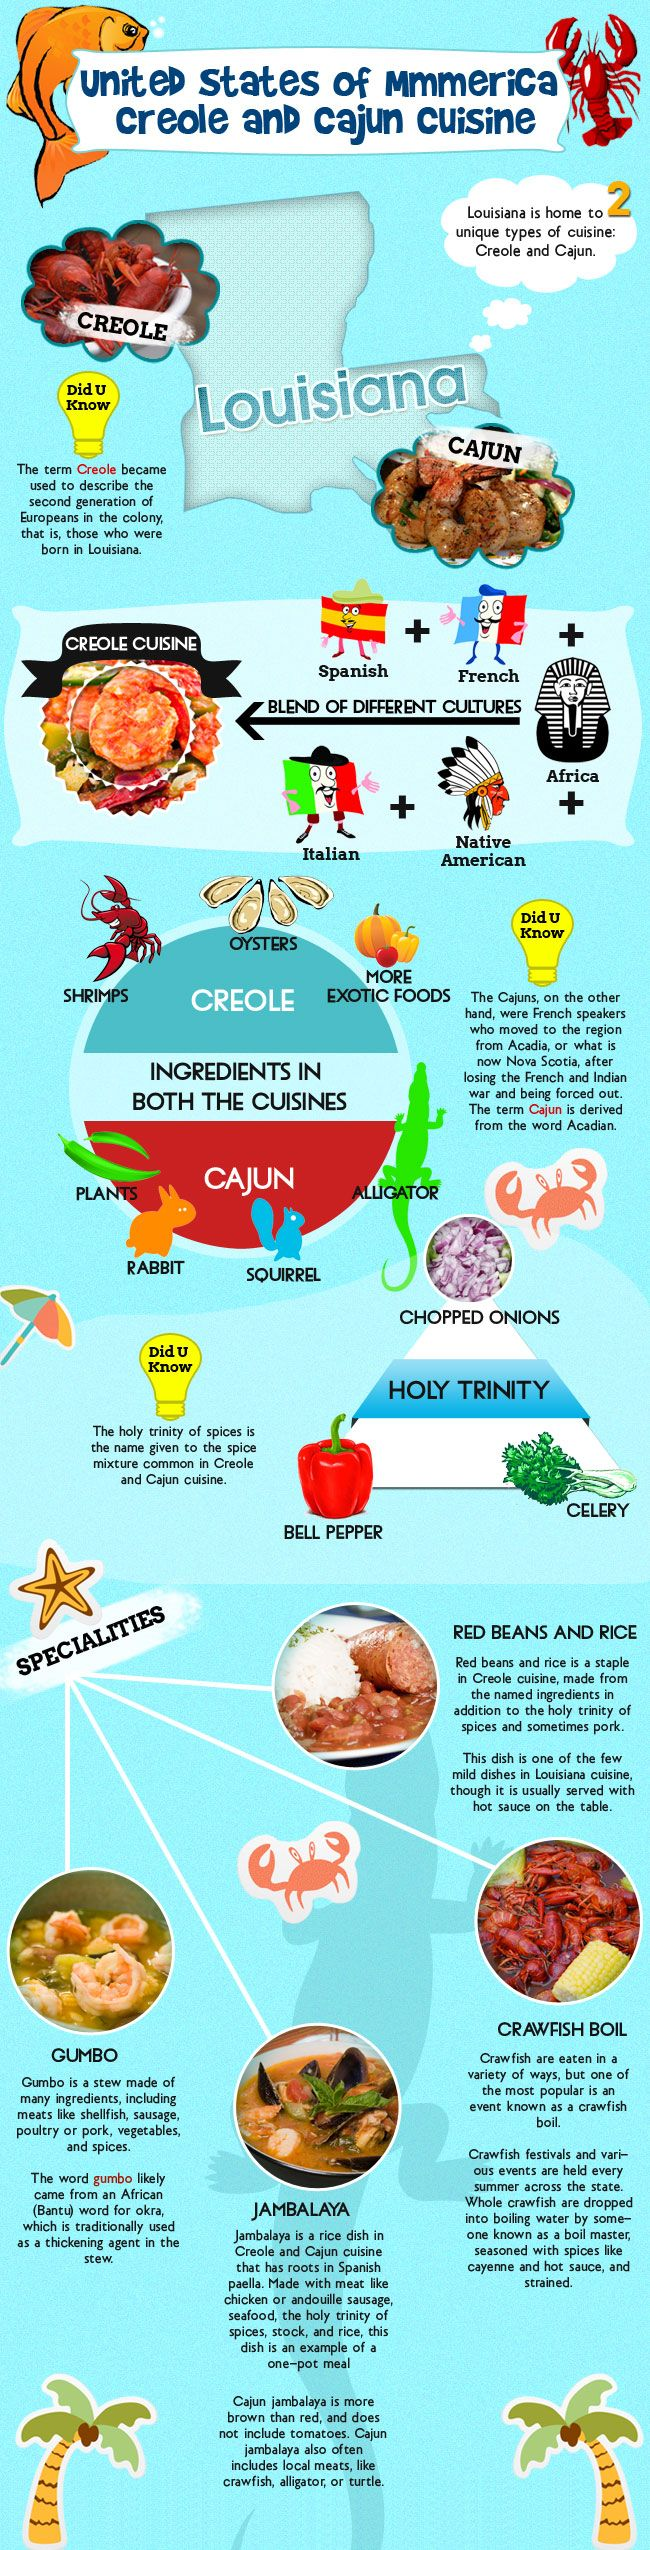 Louisiana Food Infographic  - Major food includes Creole And Cajun, creole is a blend of different cuisines......